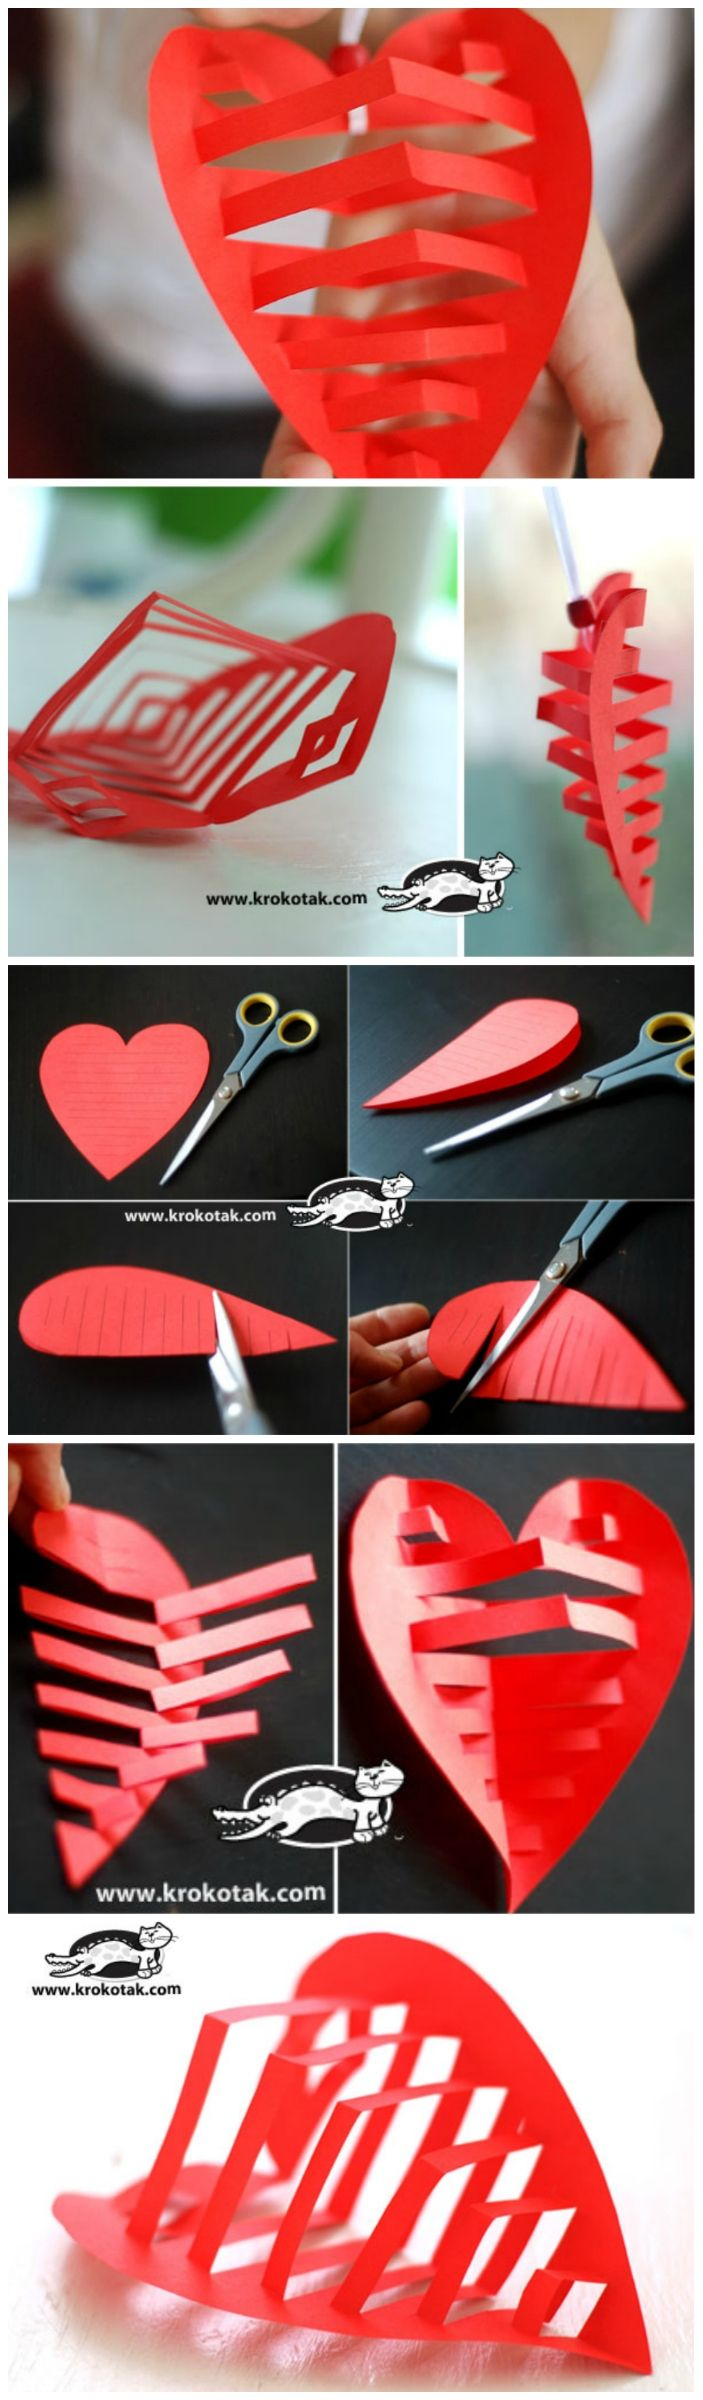 Awesome 3D Paper Heart